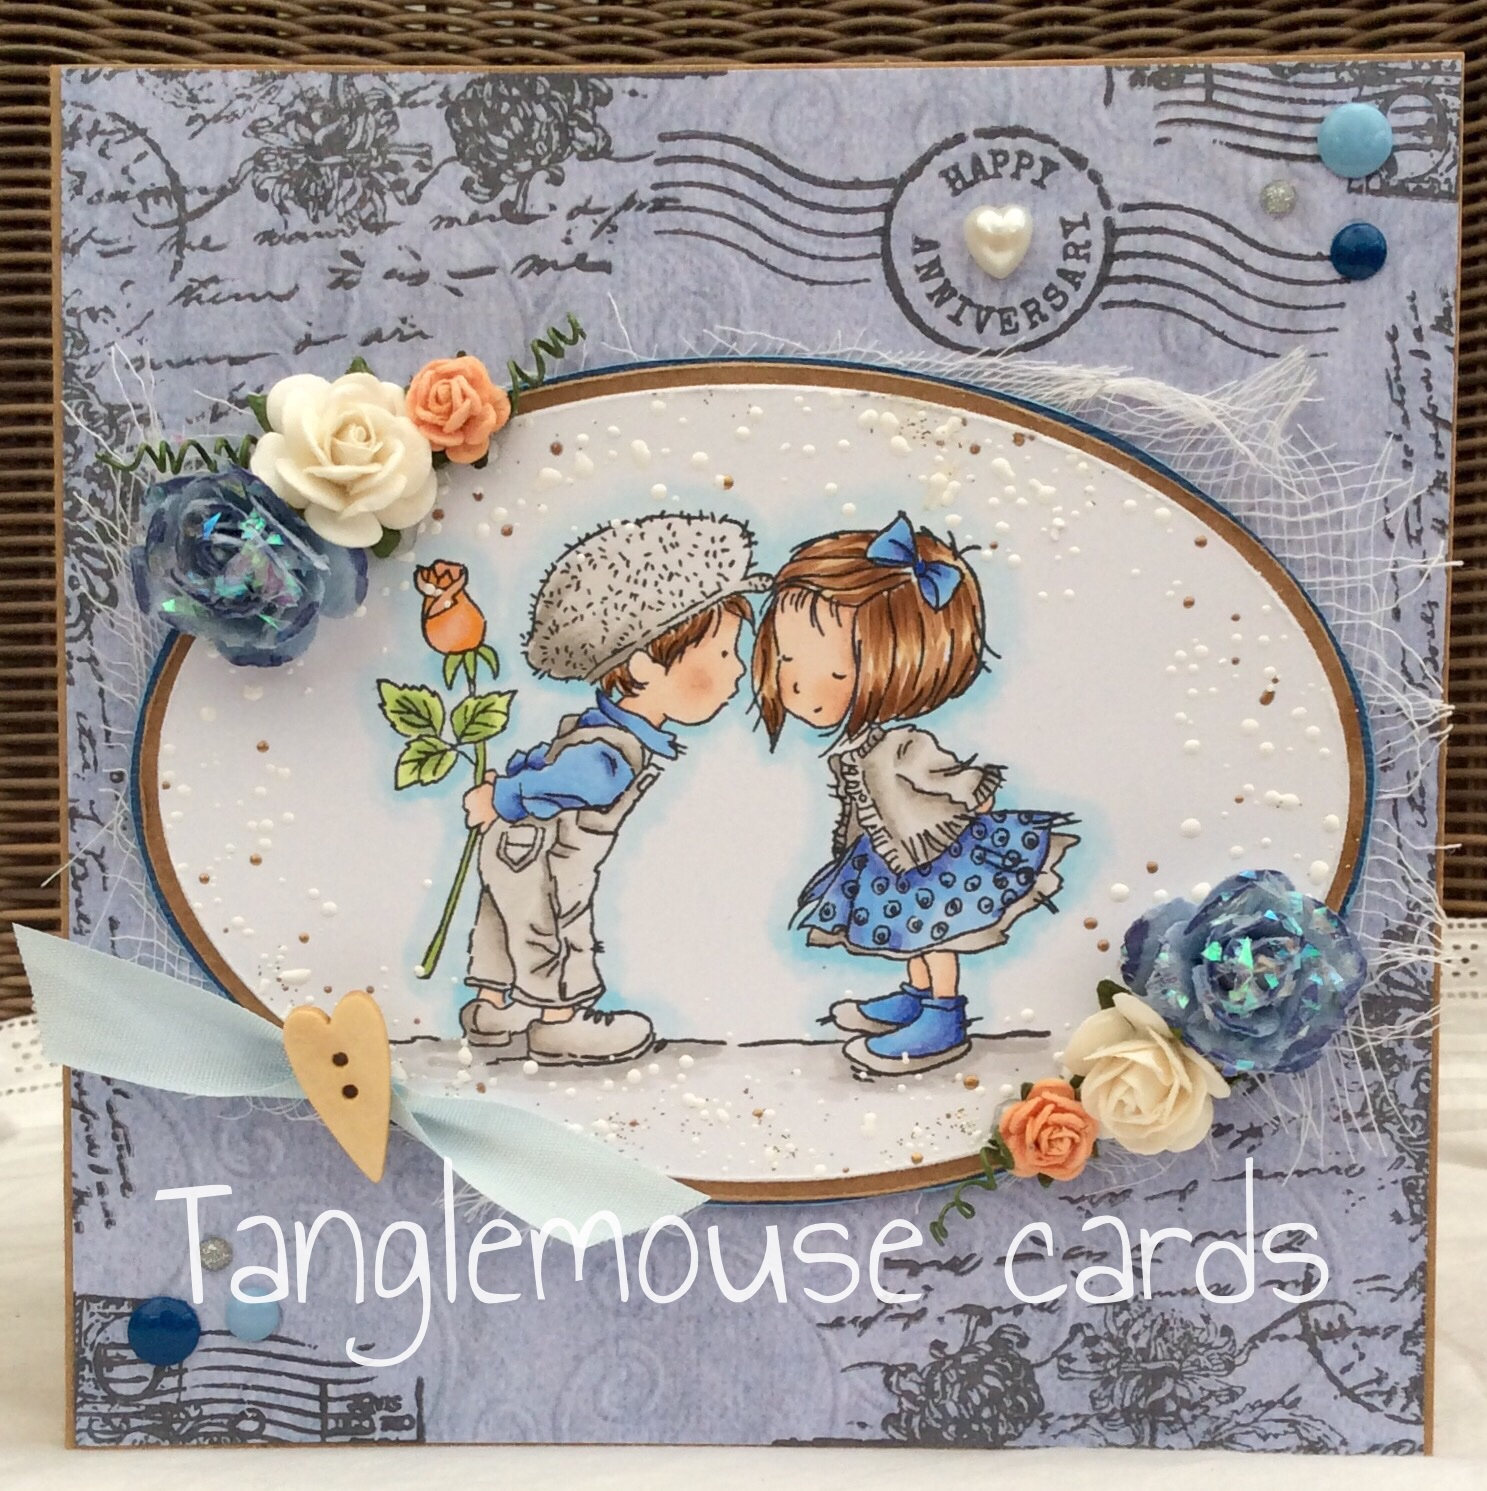 Tanglemouse cards close your eyes by lili of the valley lili of the valley rubber stamp close your eyes papers from lili of the valleys winter wishes collection copic markers memento ink pad archival ink pad altavistaventures Image collections